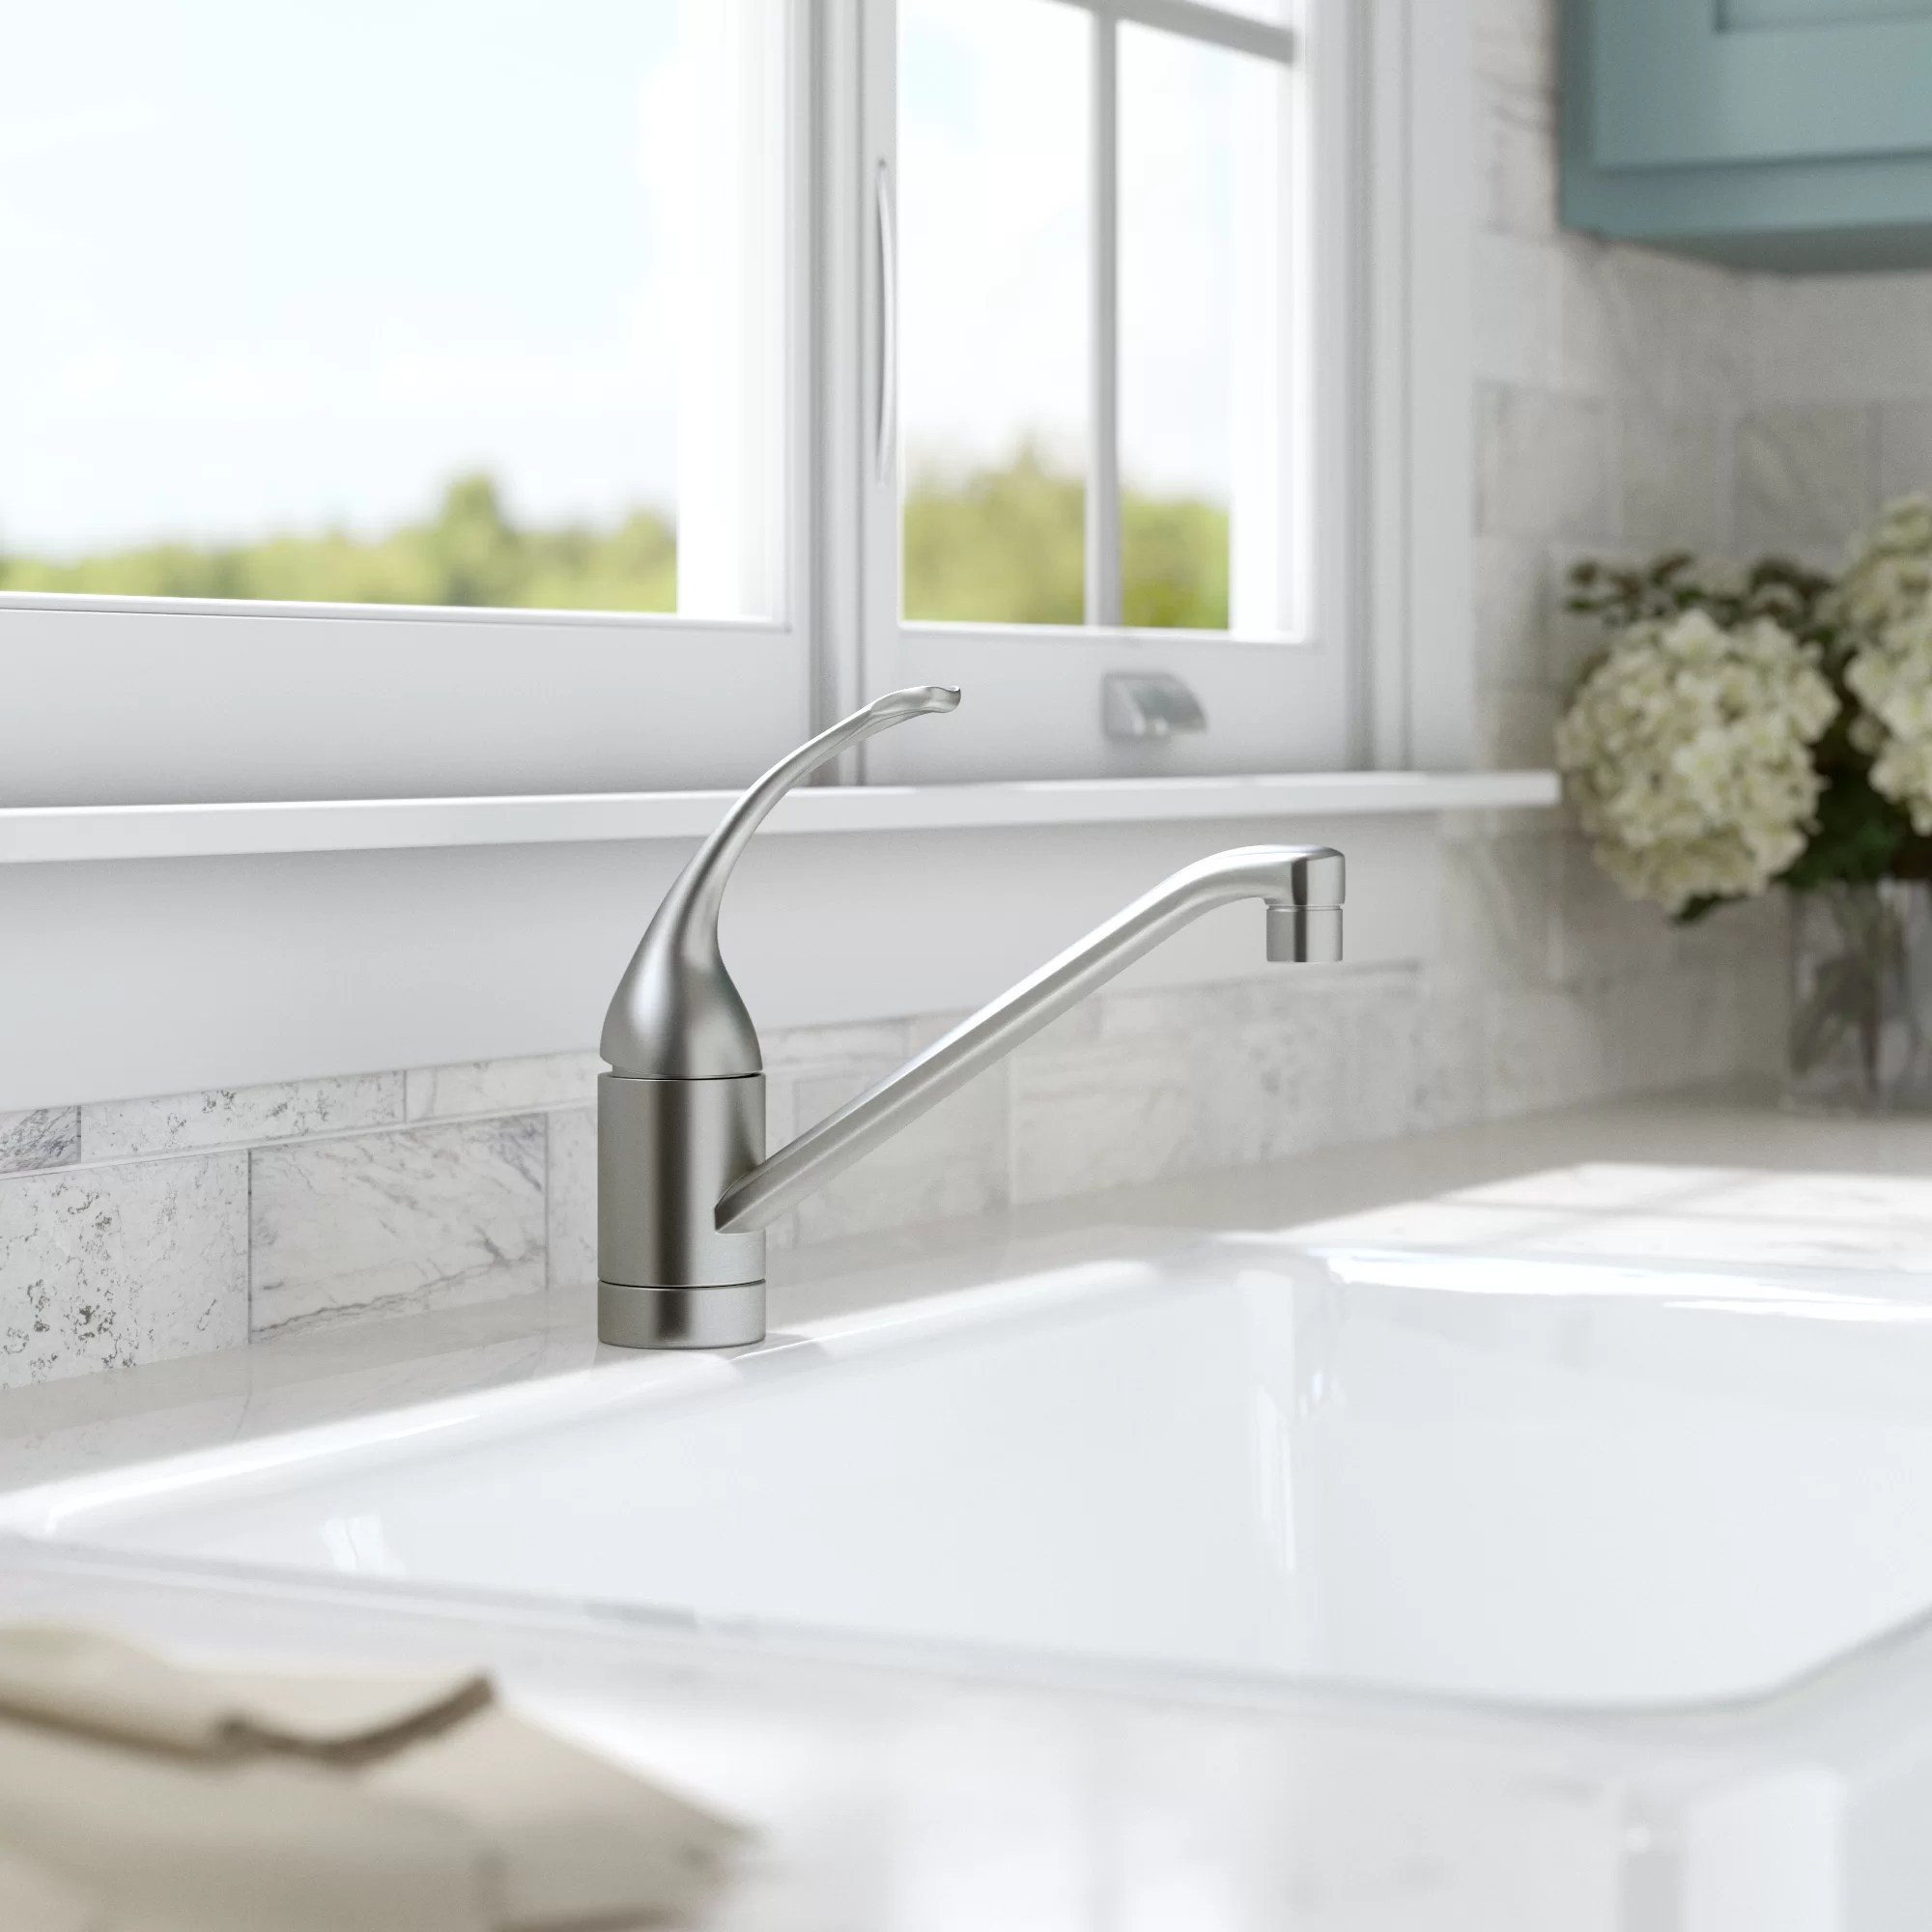 coralais single hole kitchen sink faucet with 10 spout and loop handle